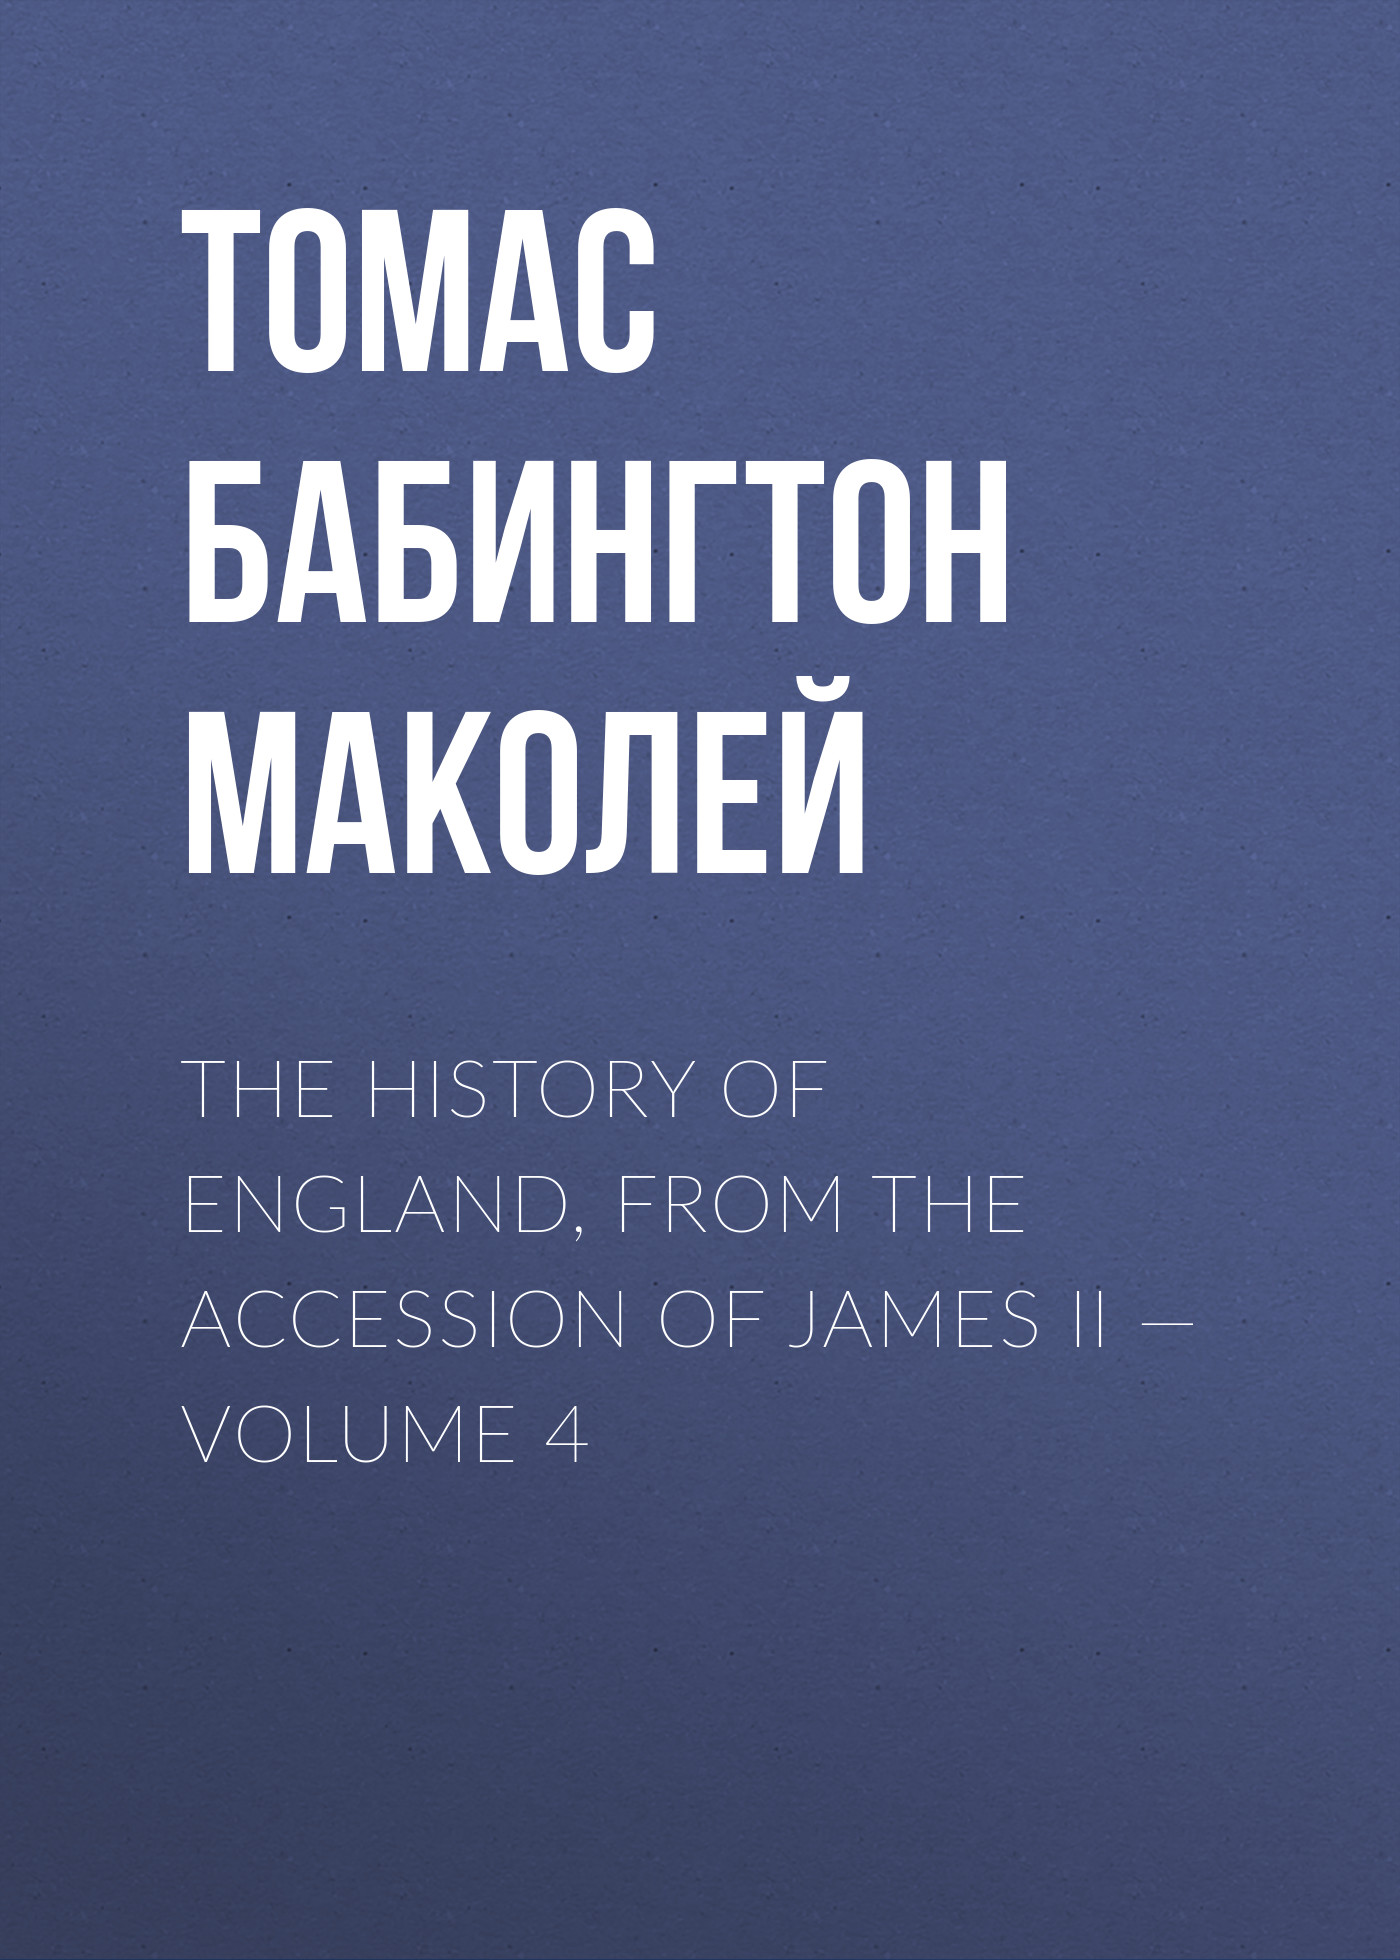 Томас Бабингтон Маколей The History of England, from the Accession of James II — Volume 4 the impact of ethiopia s accession to the wto